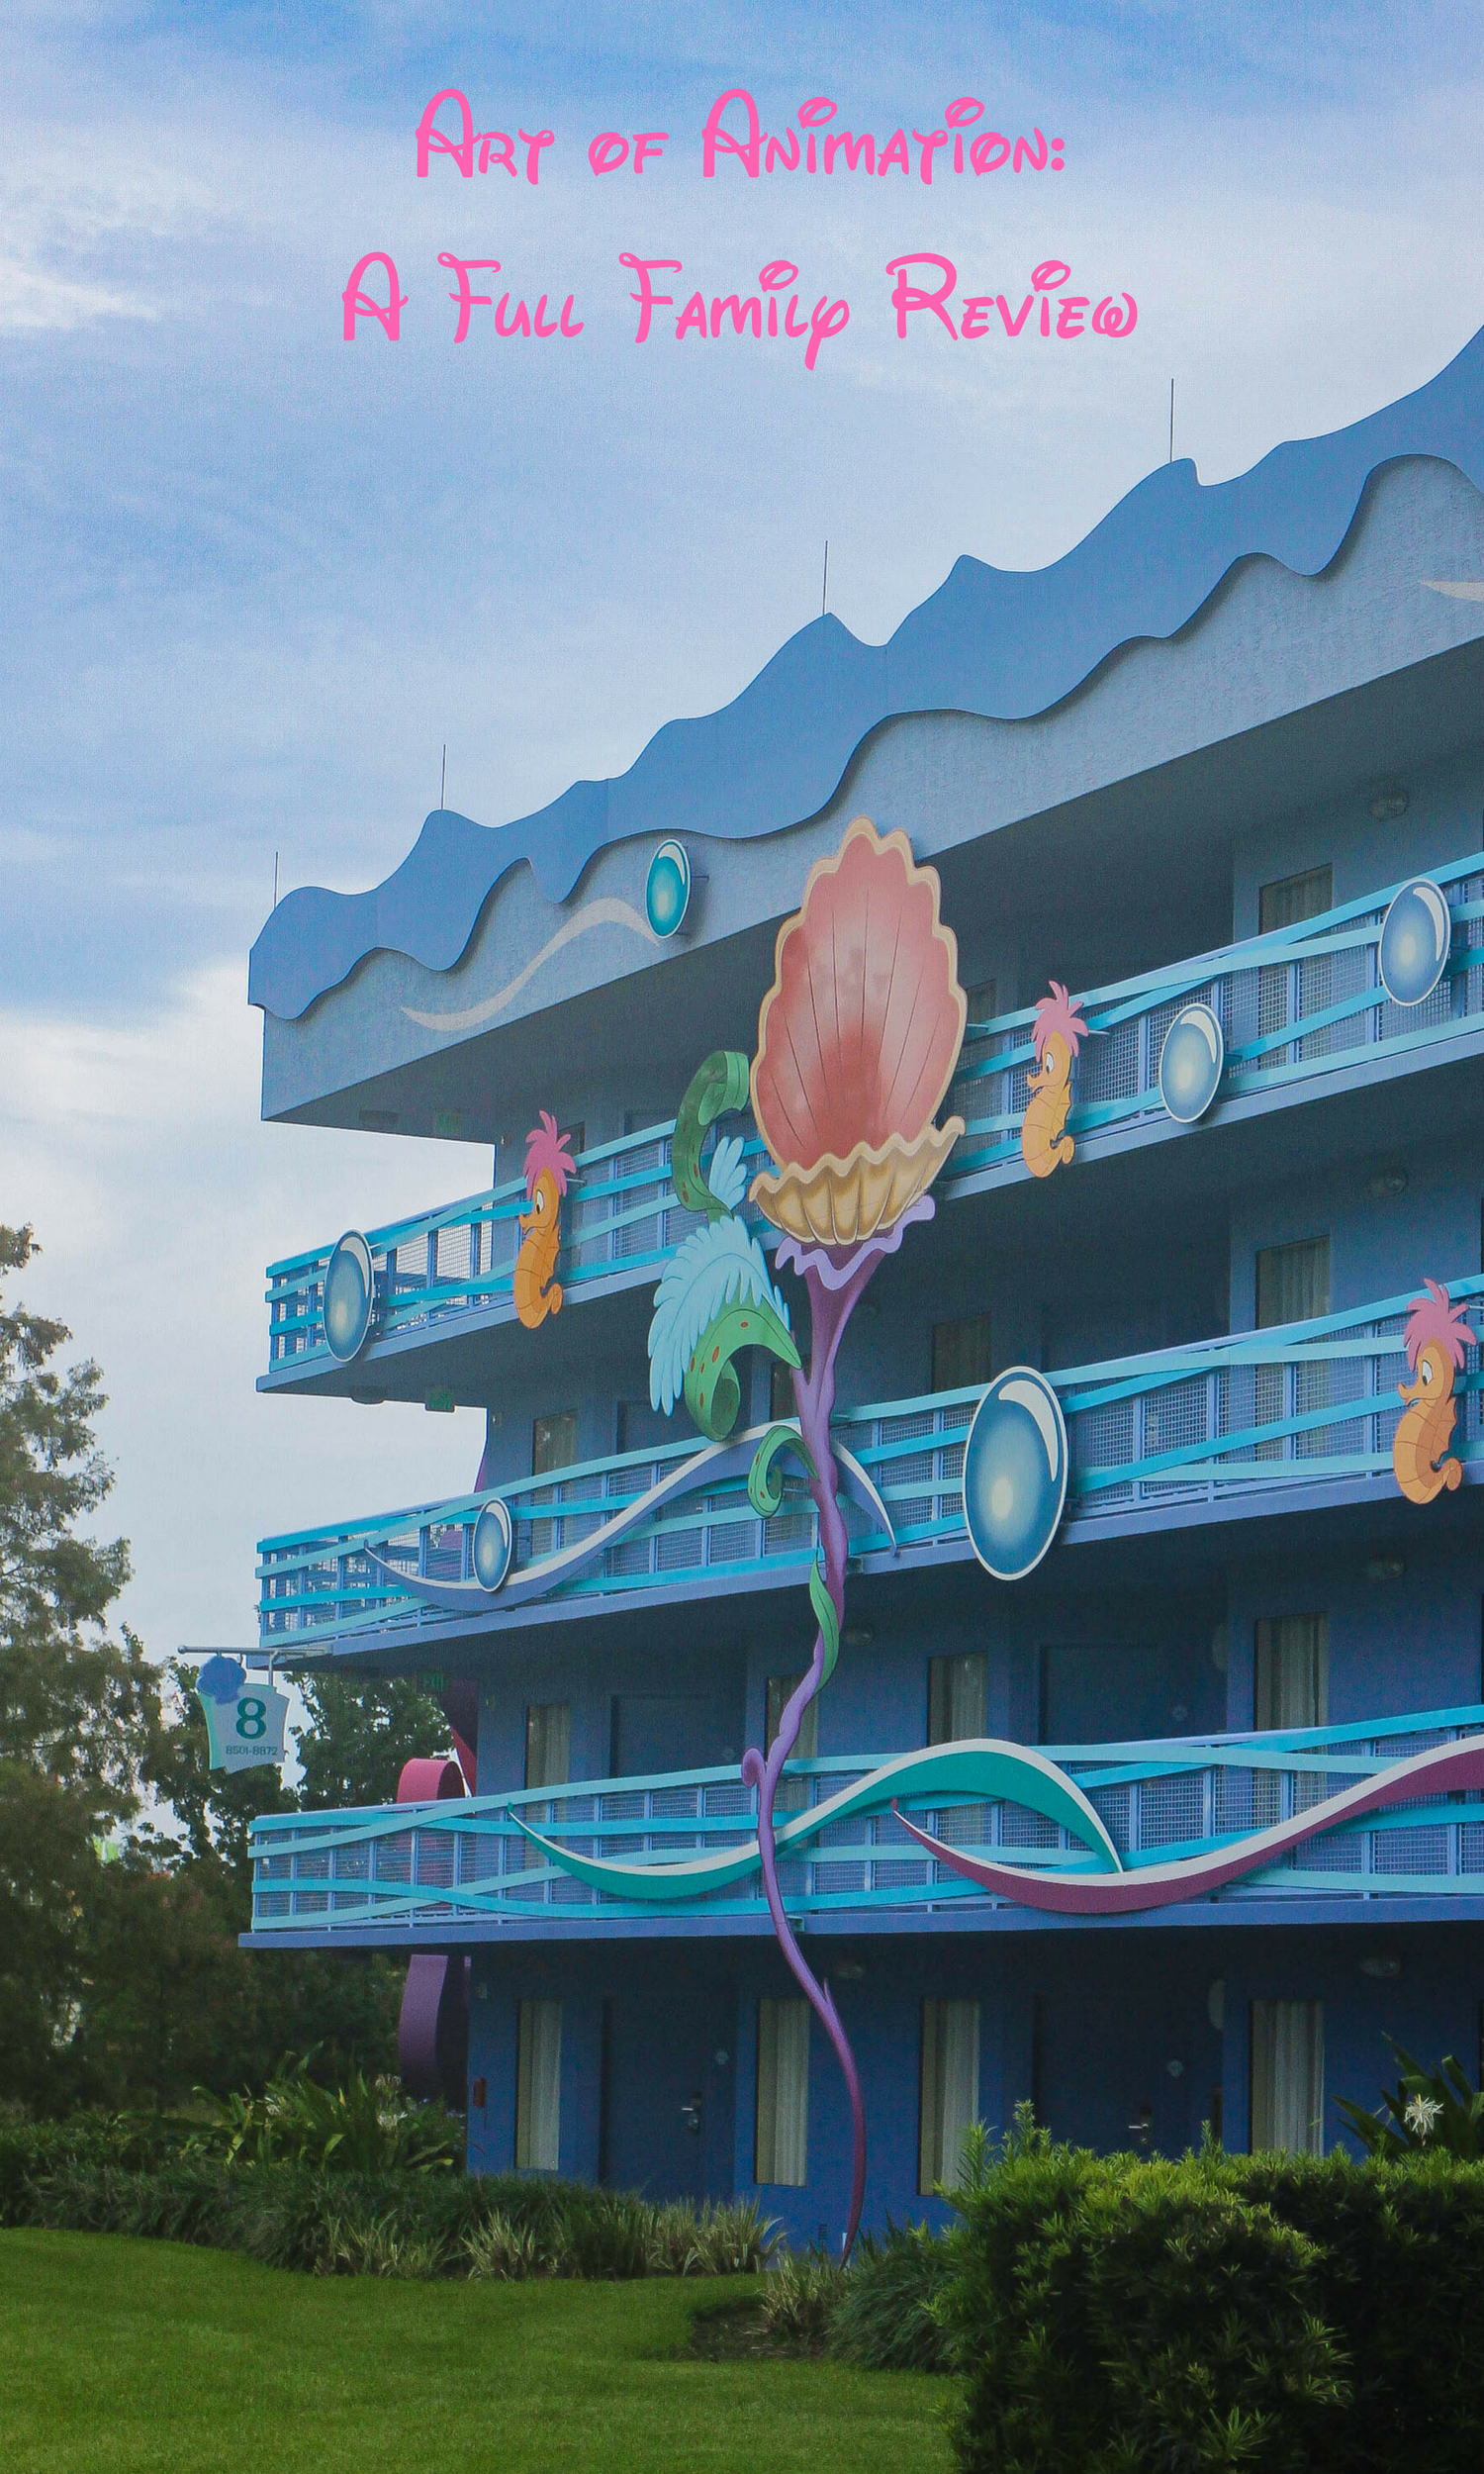 Art of Animation: Looking at Walt Disney World Hotels? Check out this full family review of Art of Animation!